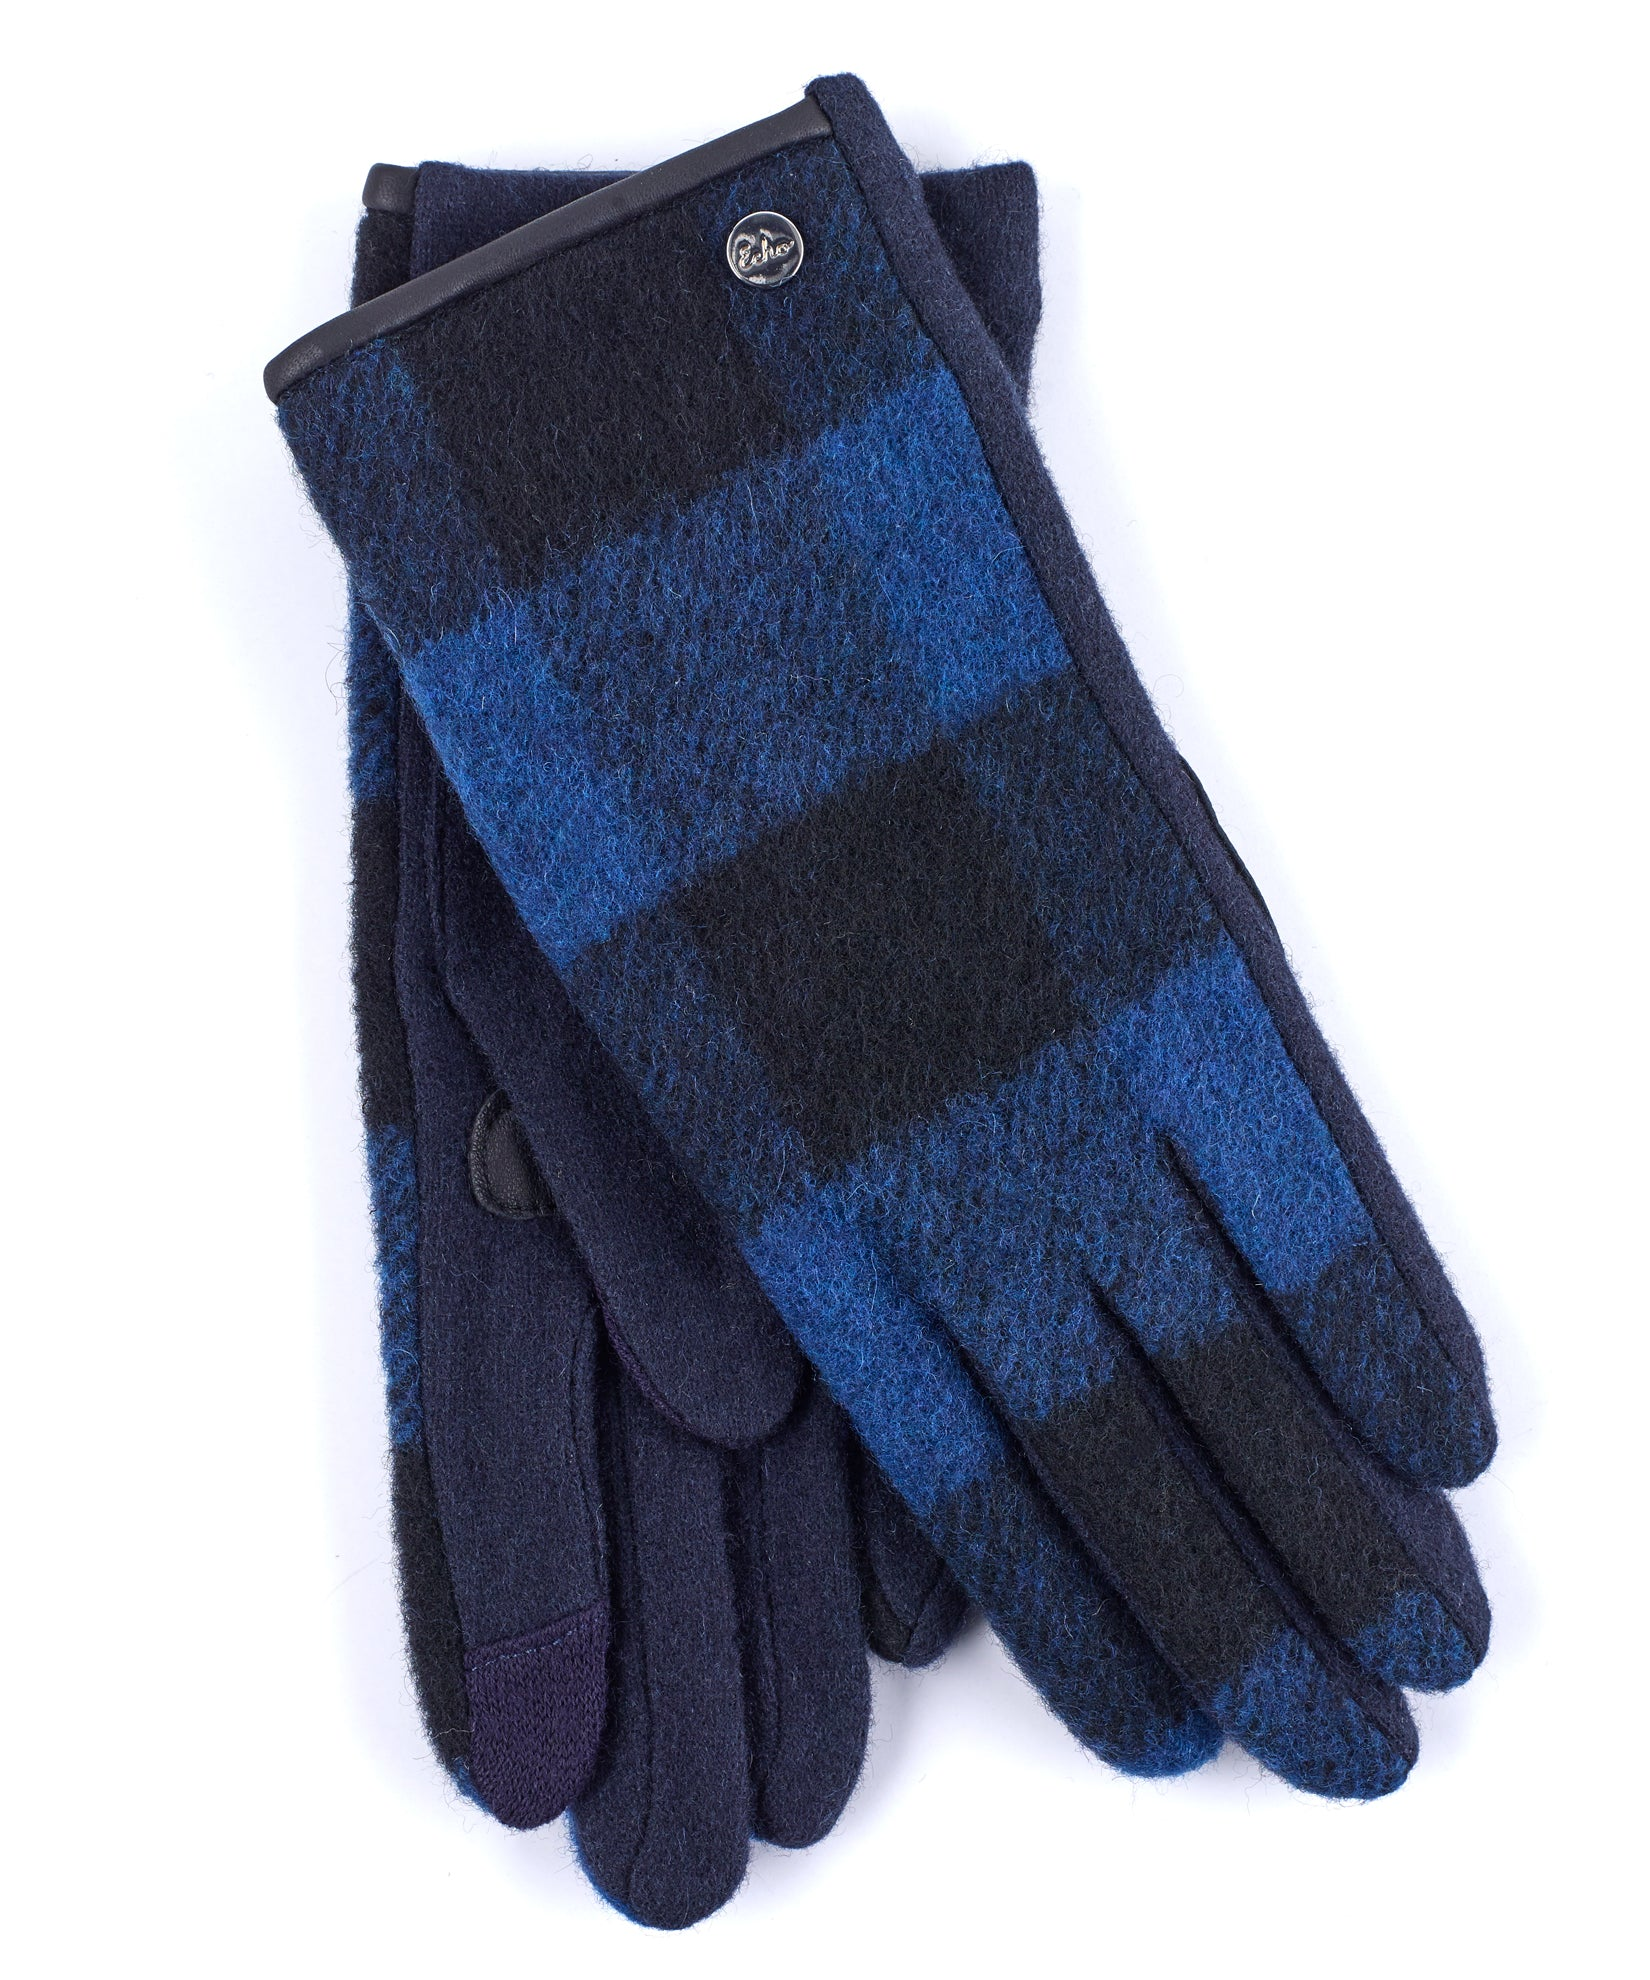 Echo Navy - Buffalo Plaid Glove